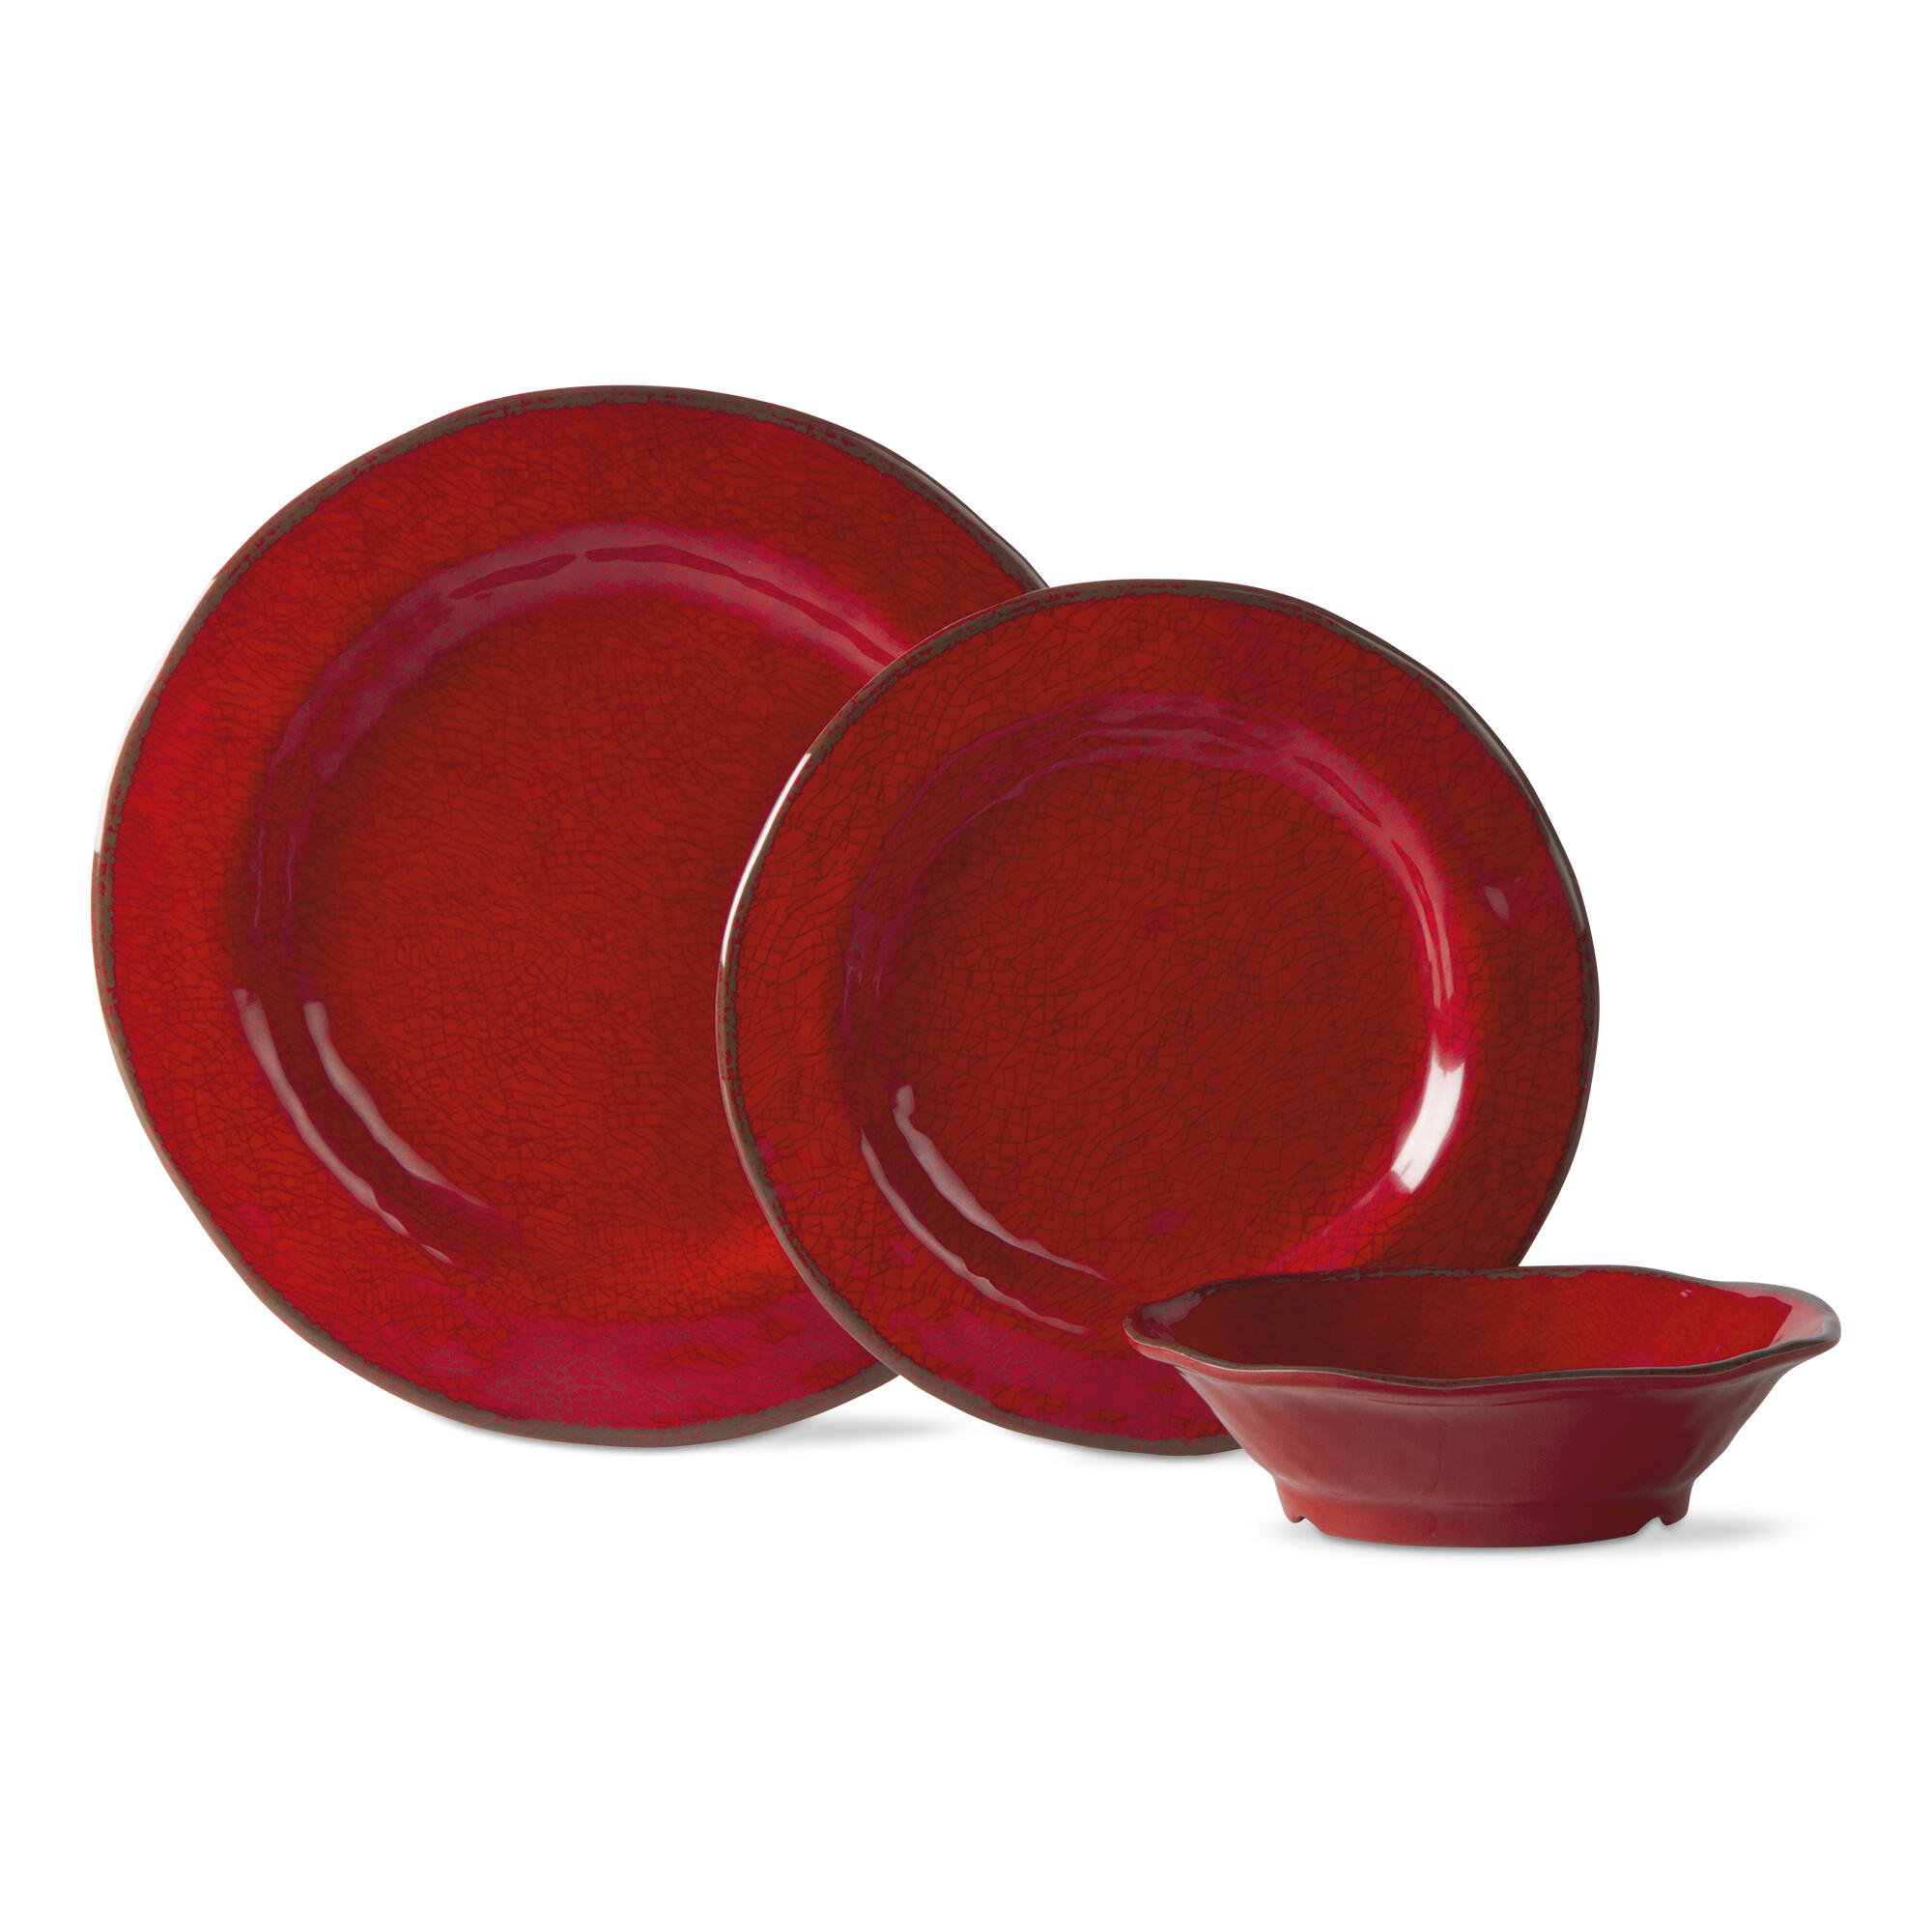 $12 (reg $60) Lanai Melamine Red Dinnerware Set (12-Pack) at Home Depot